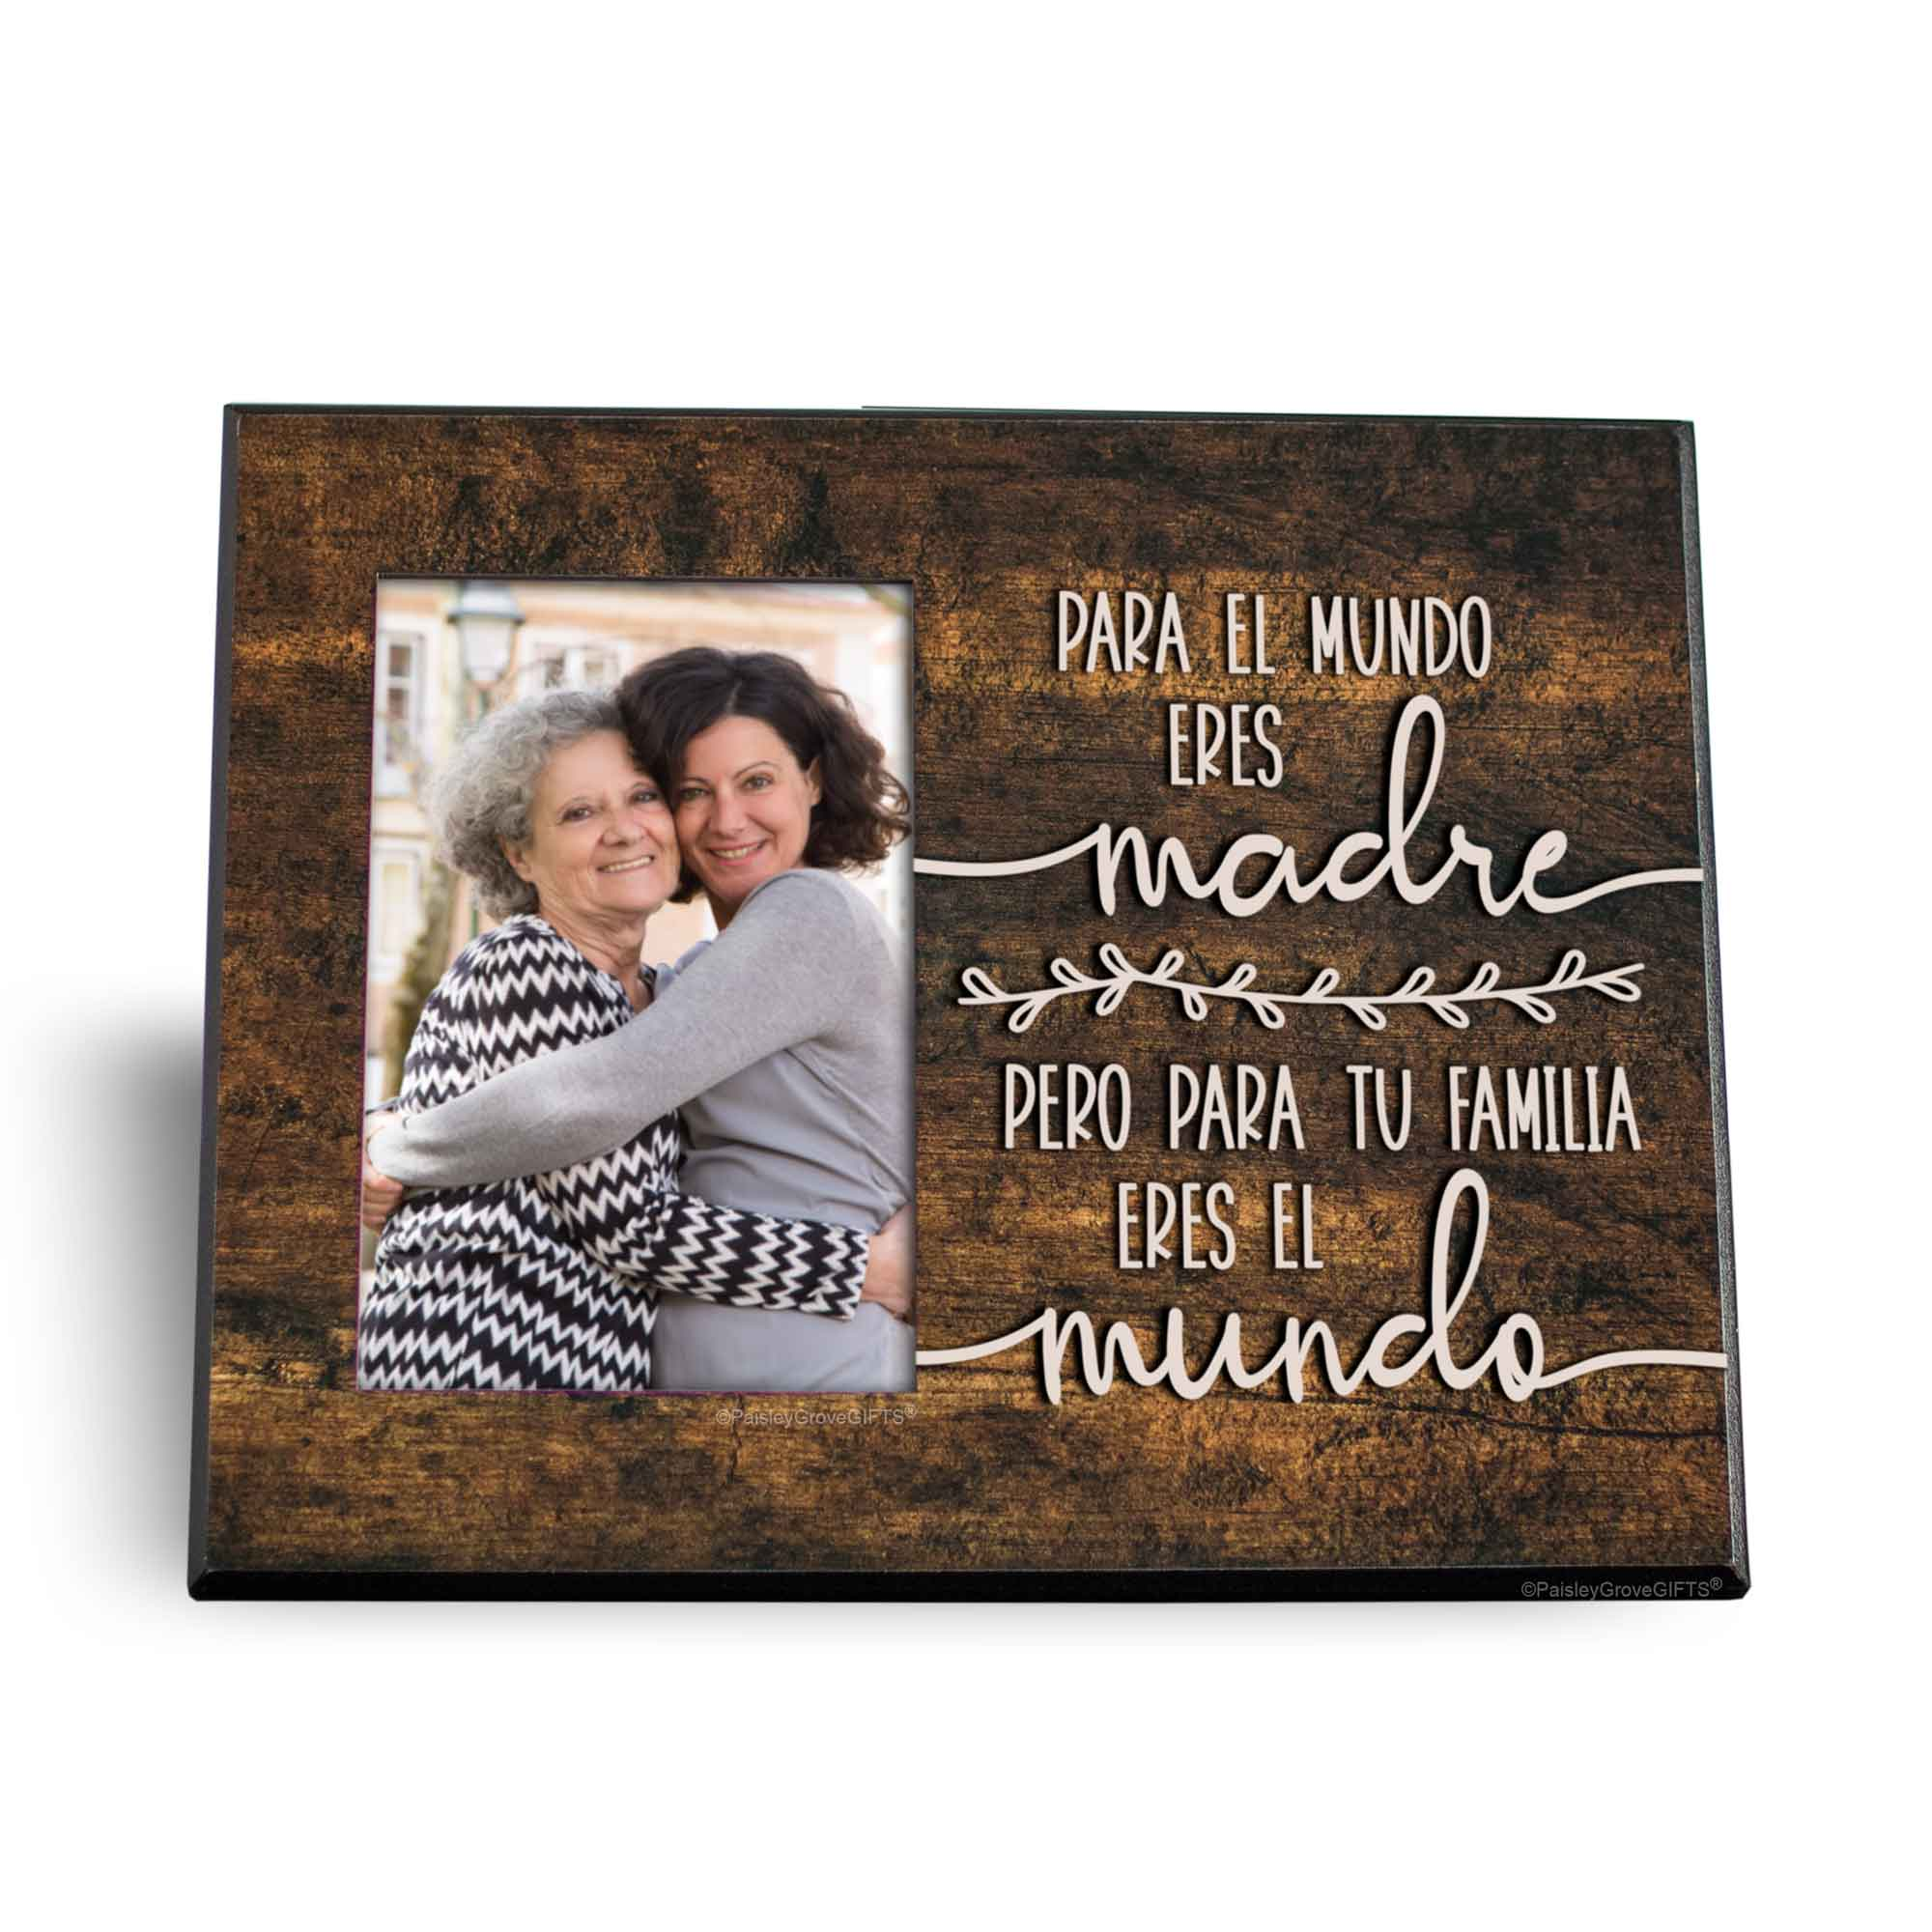 CopyrightPaisleyGroveGIFTS S200d Dia de las madres frame for Spanish Mom with Quote in Espanol